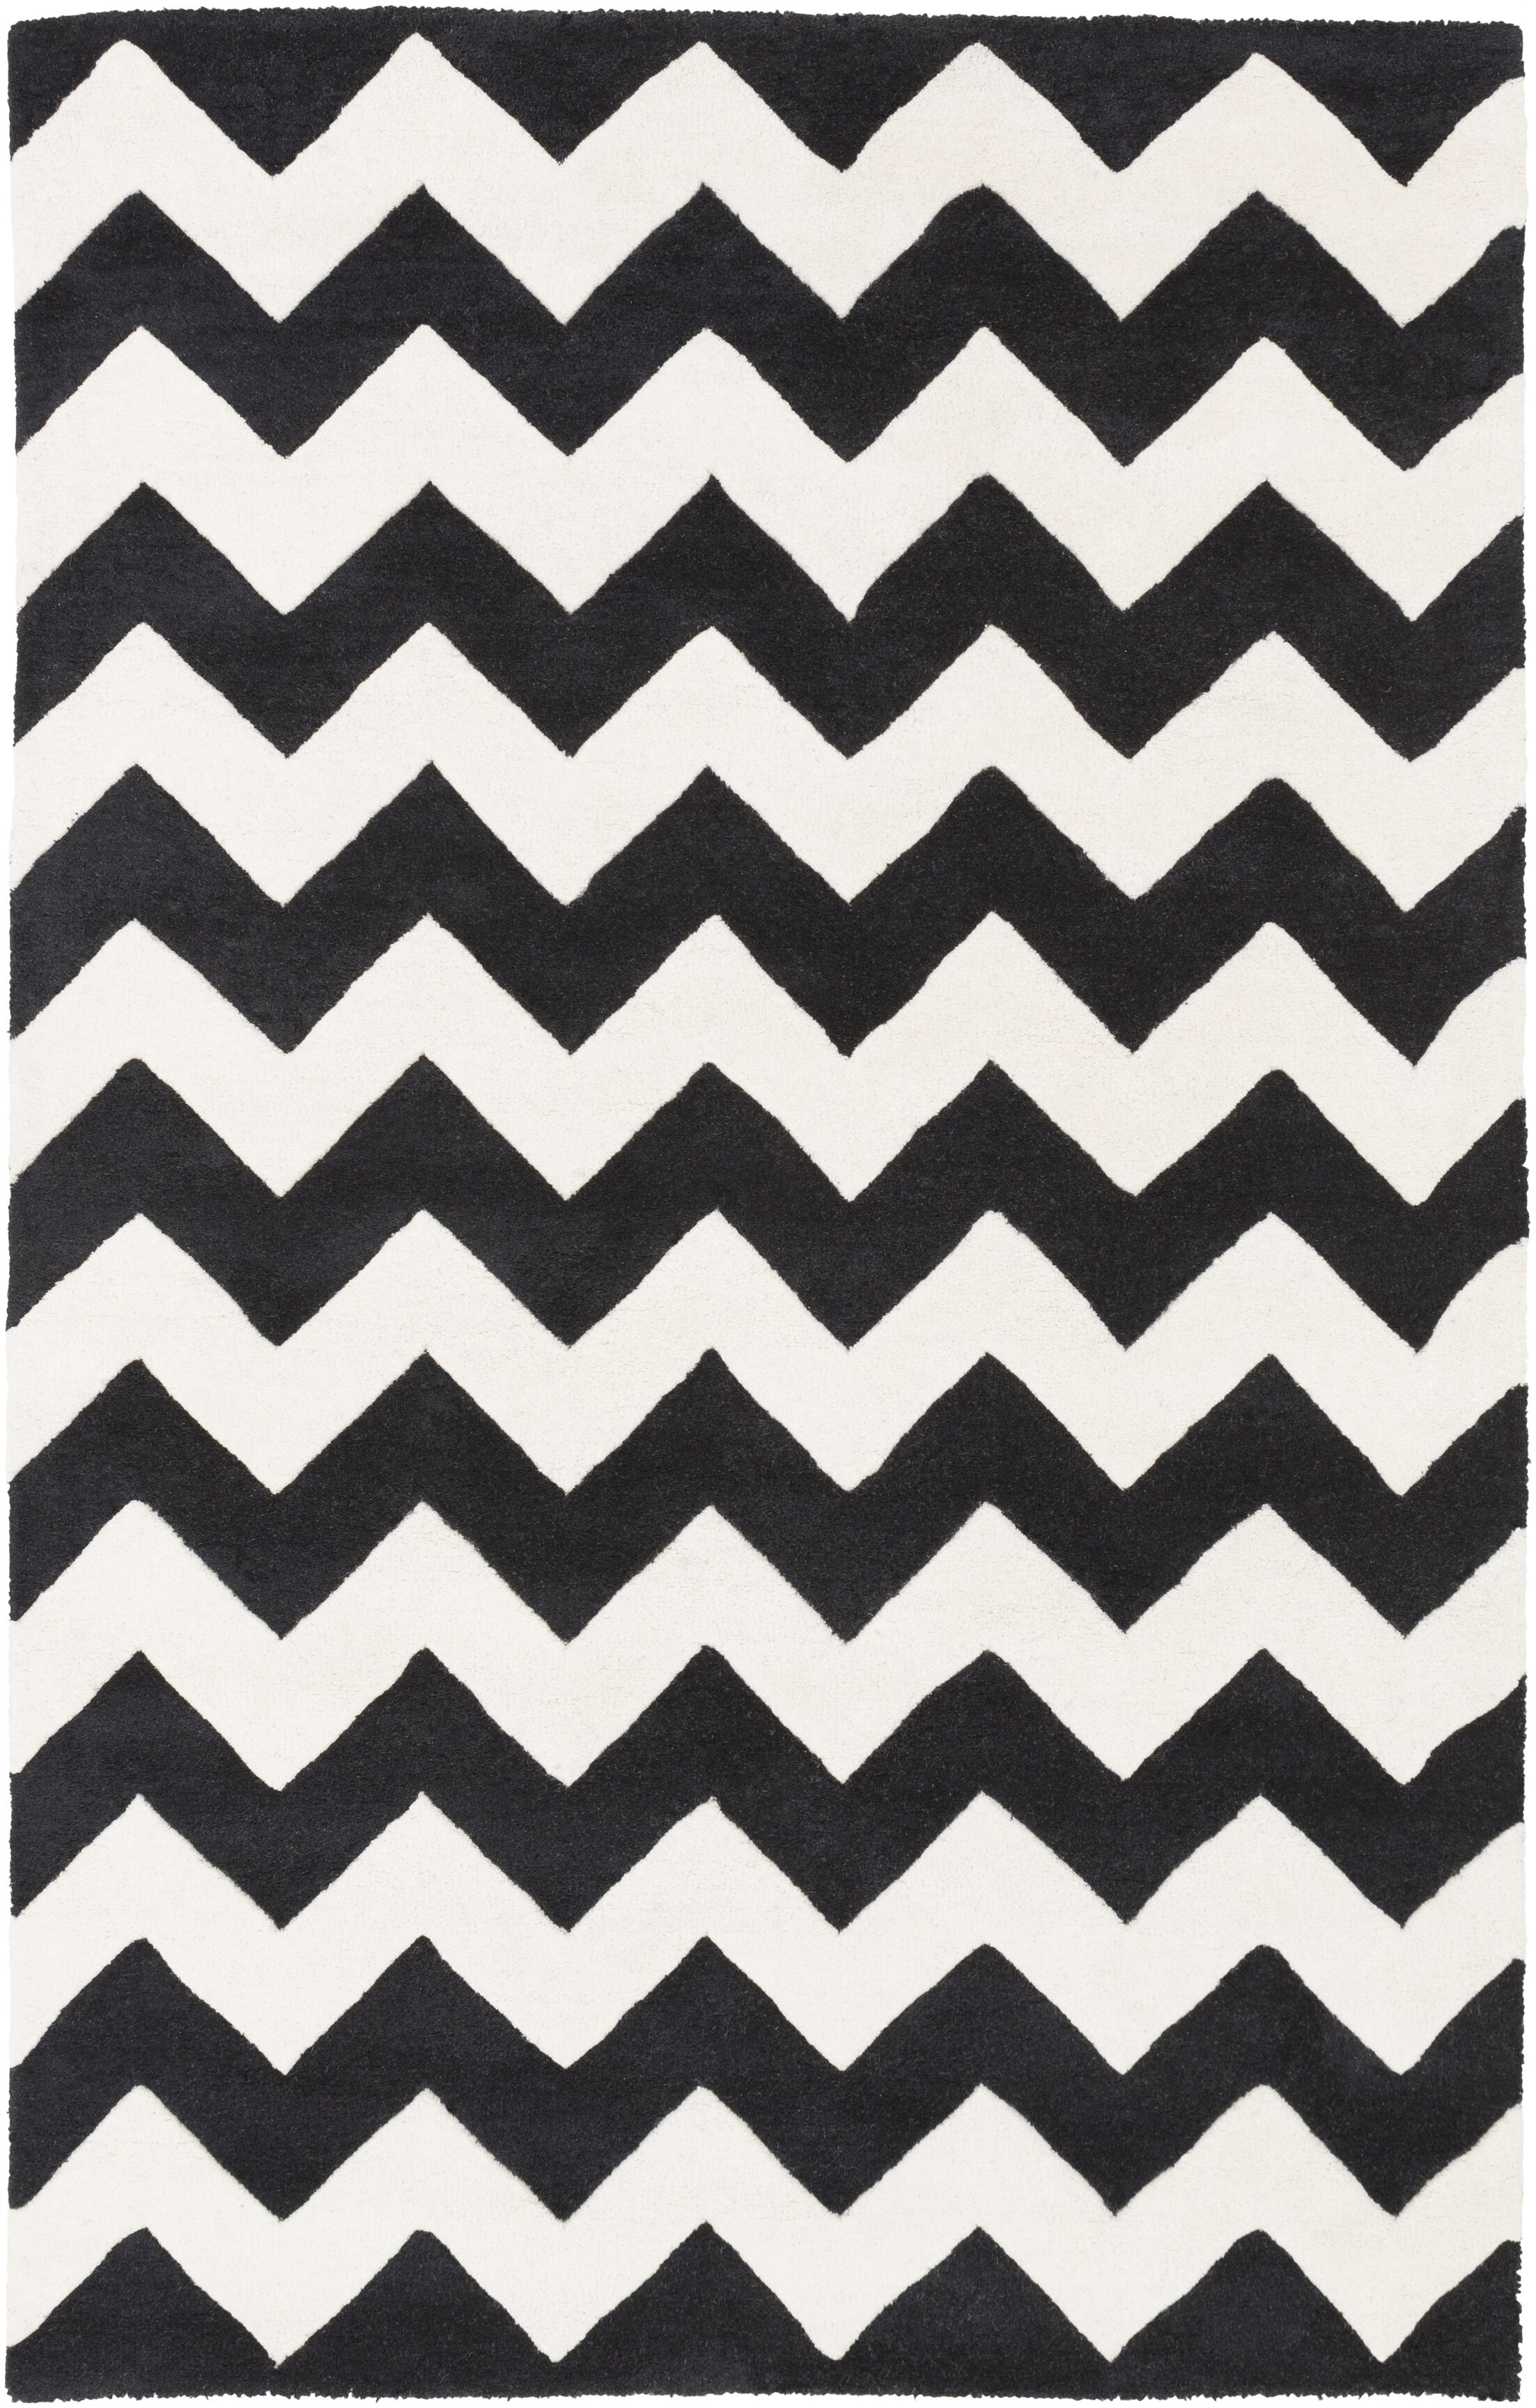 Ayler Black & Ivory Chevron Area Rug Rug Size: Rectangle 7'6